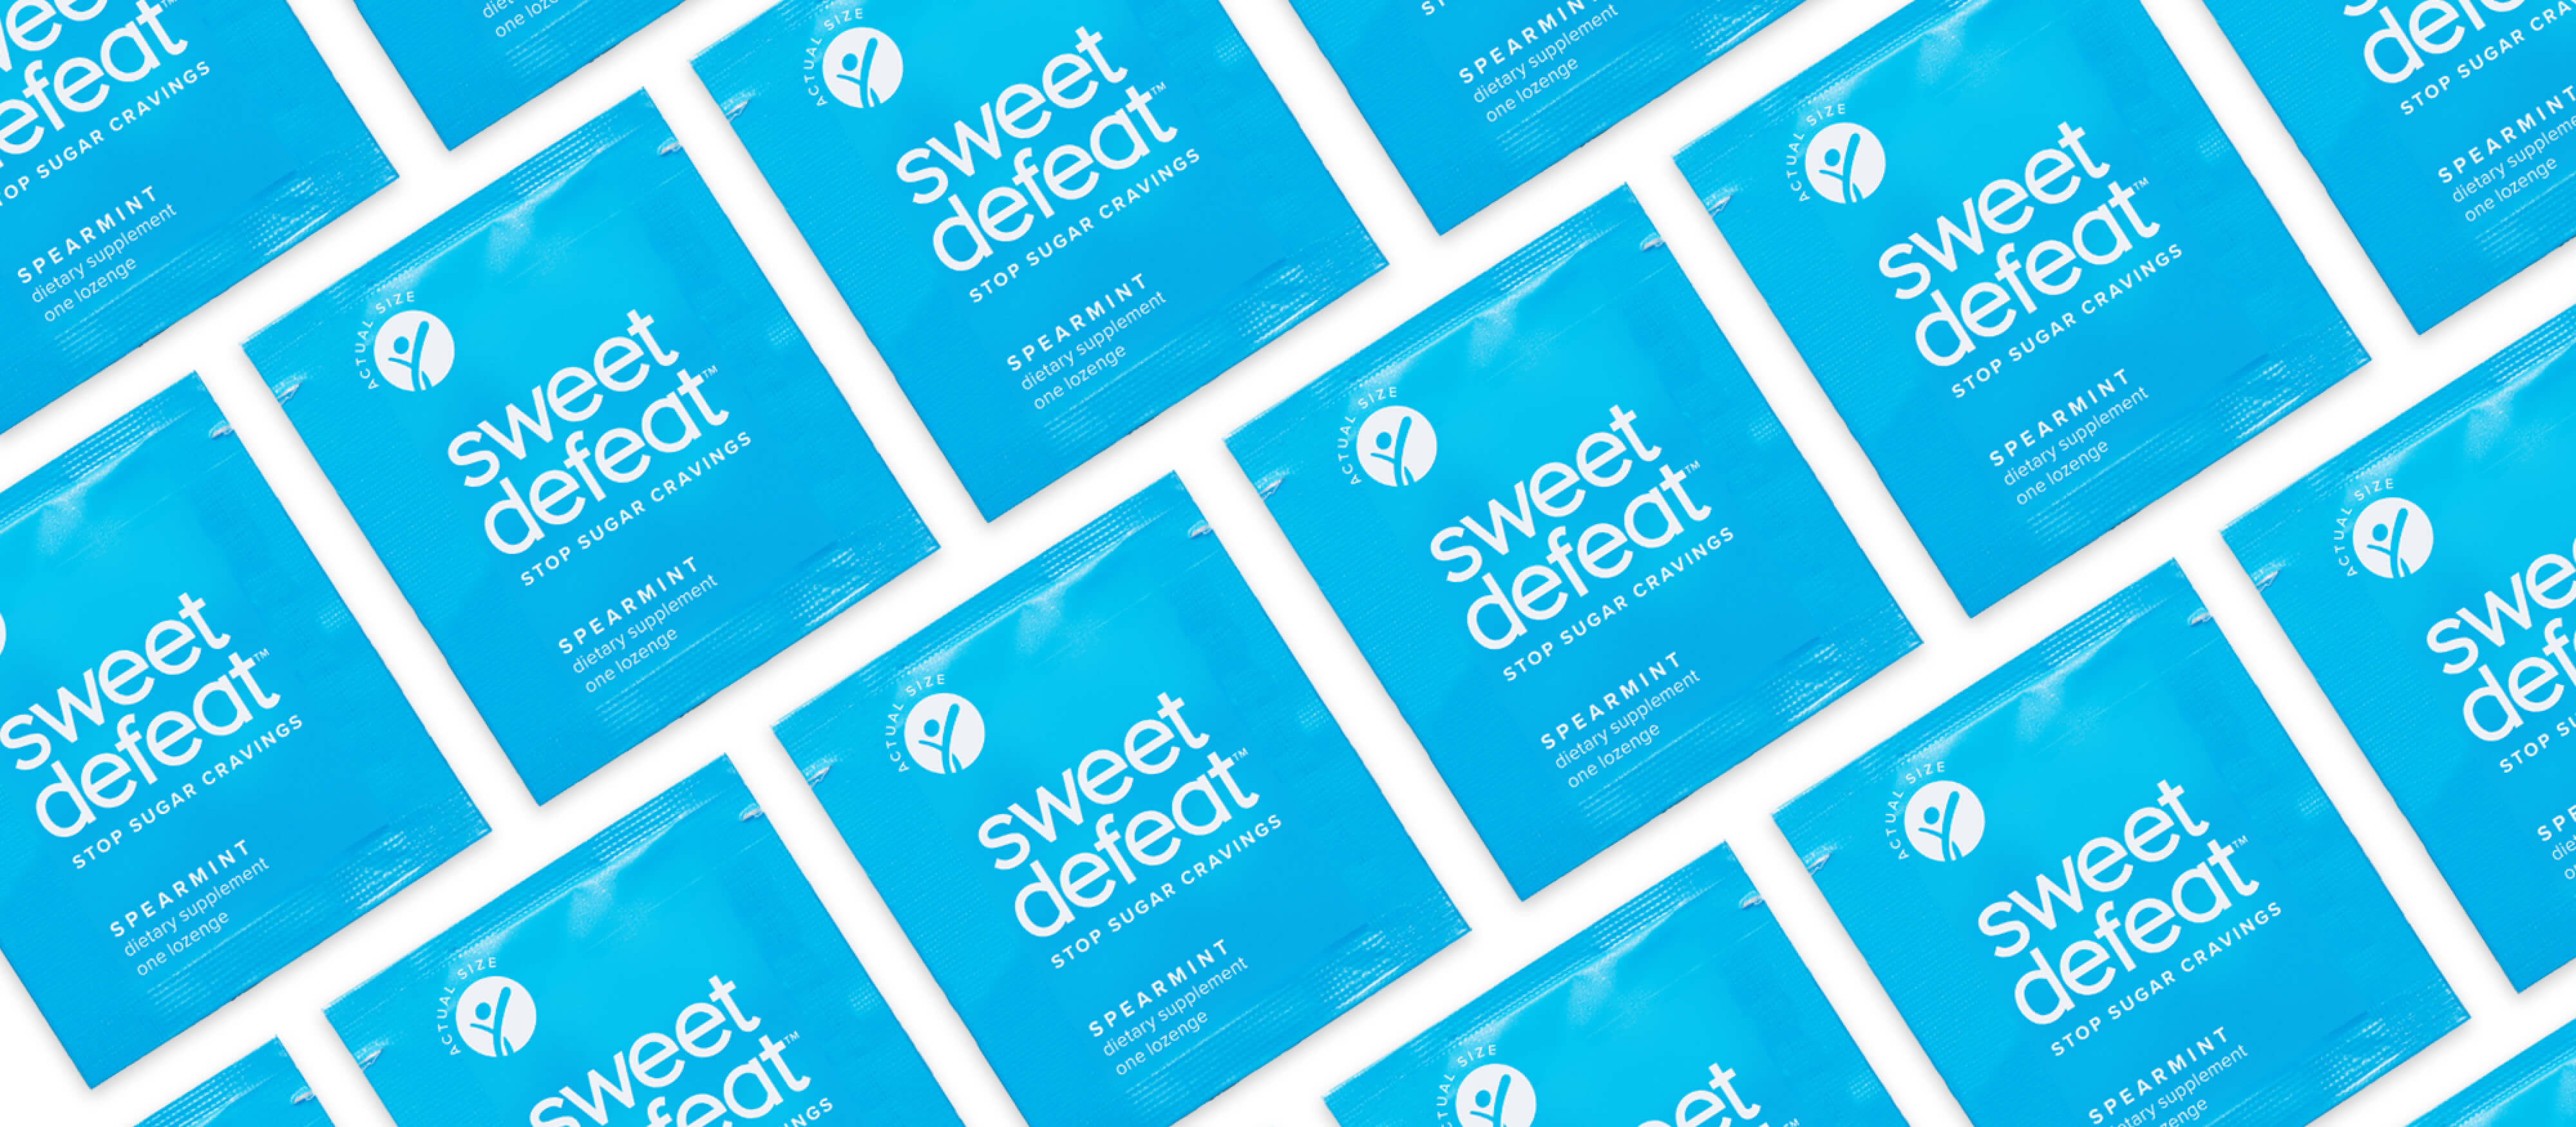 sweet defeat lozenge packaging pattern